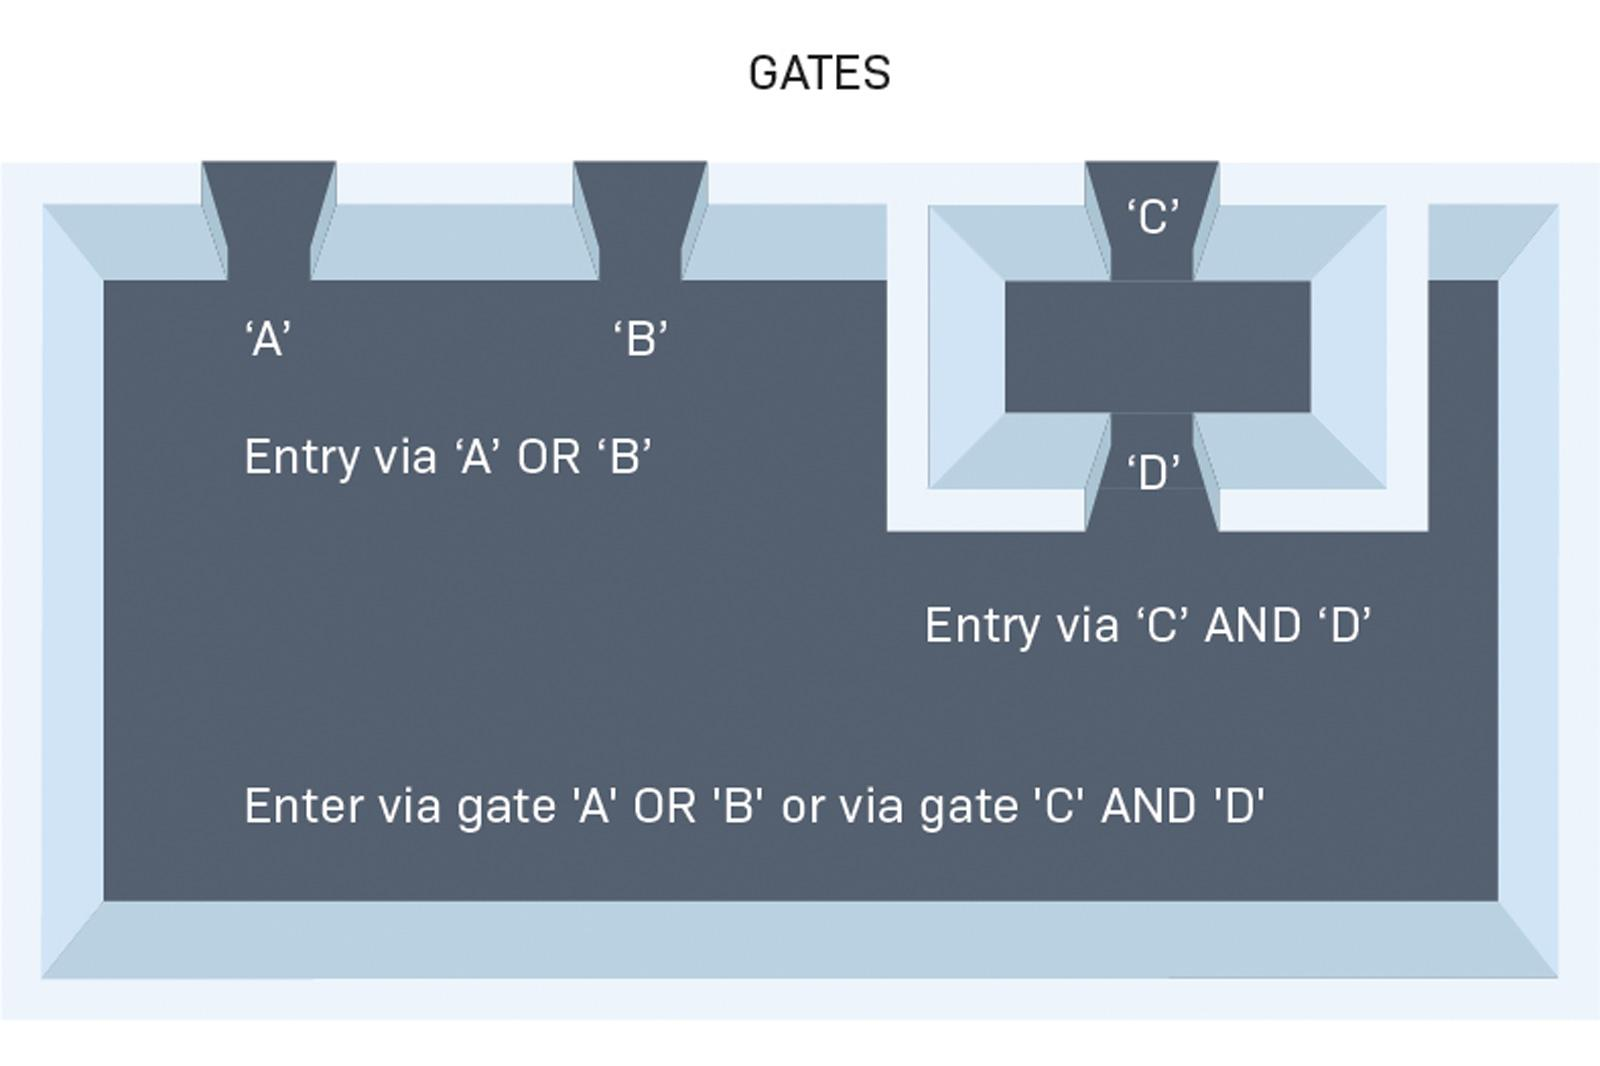 Design A Logic Gate Or Relay Logic Circuit Based On That Expression